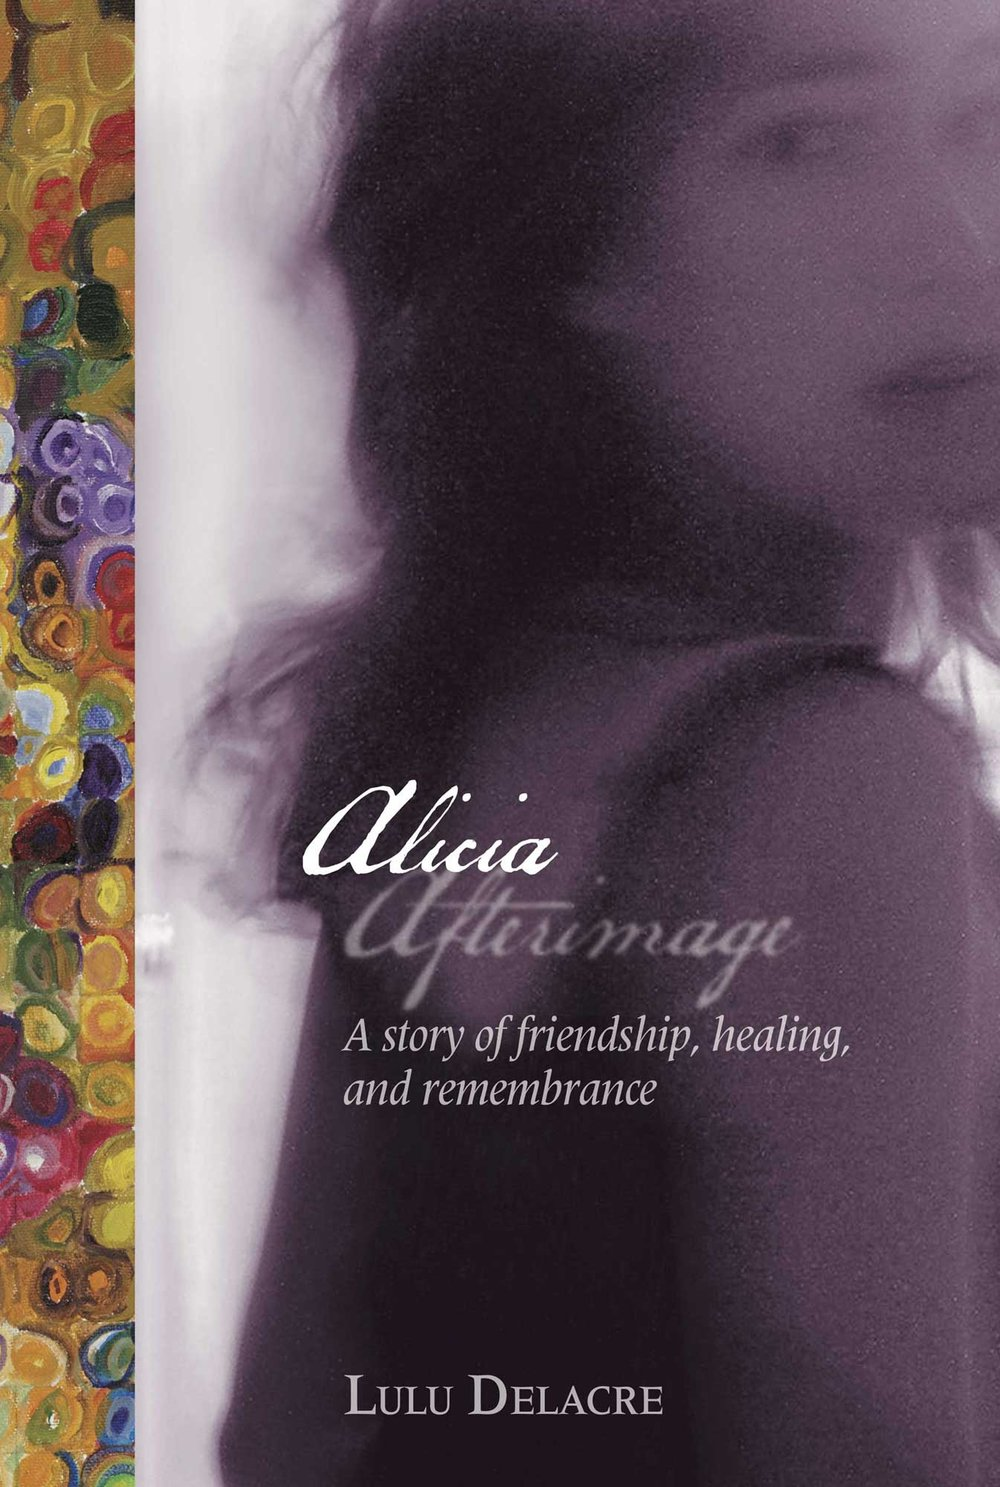 Alicia Afterimage novel by lulu delacre